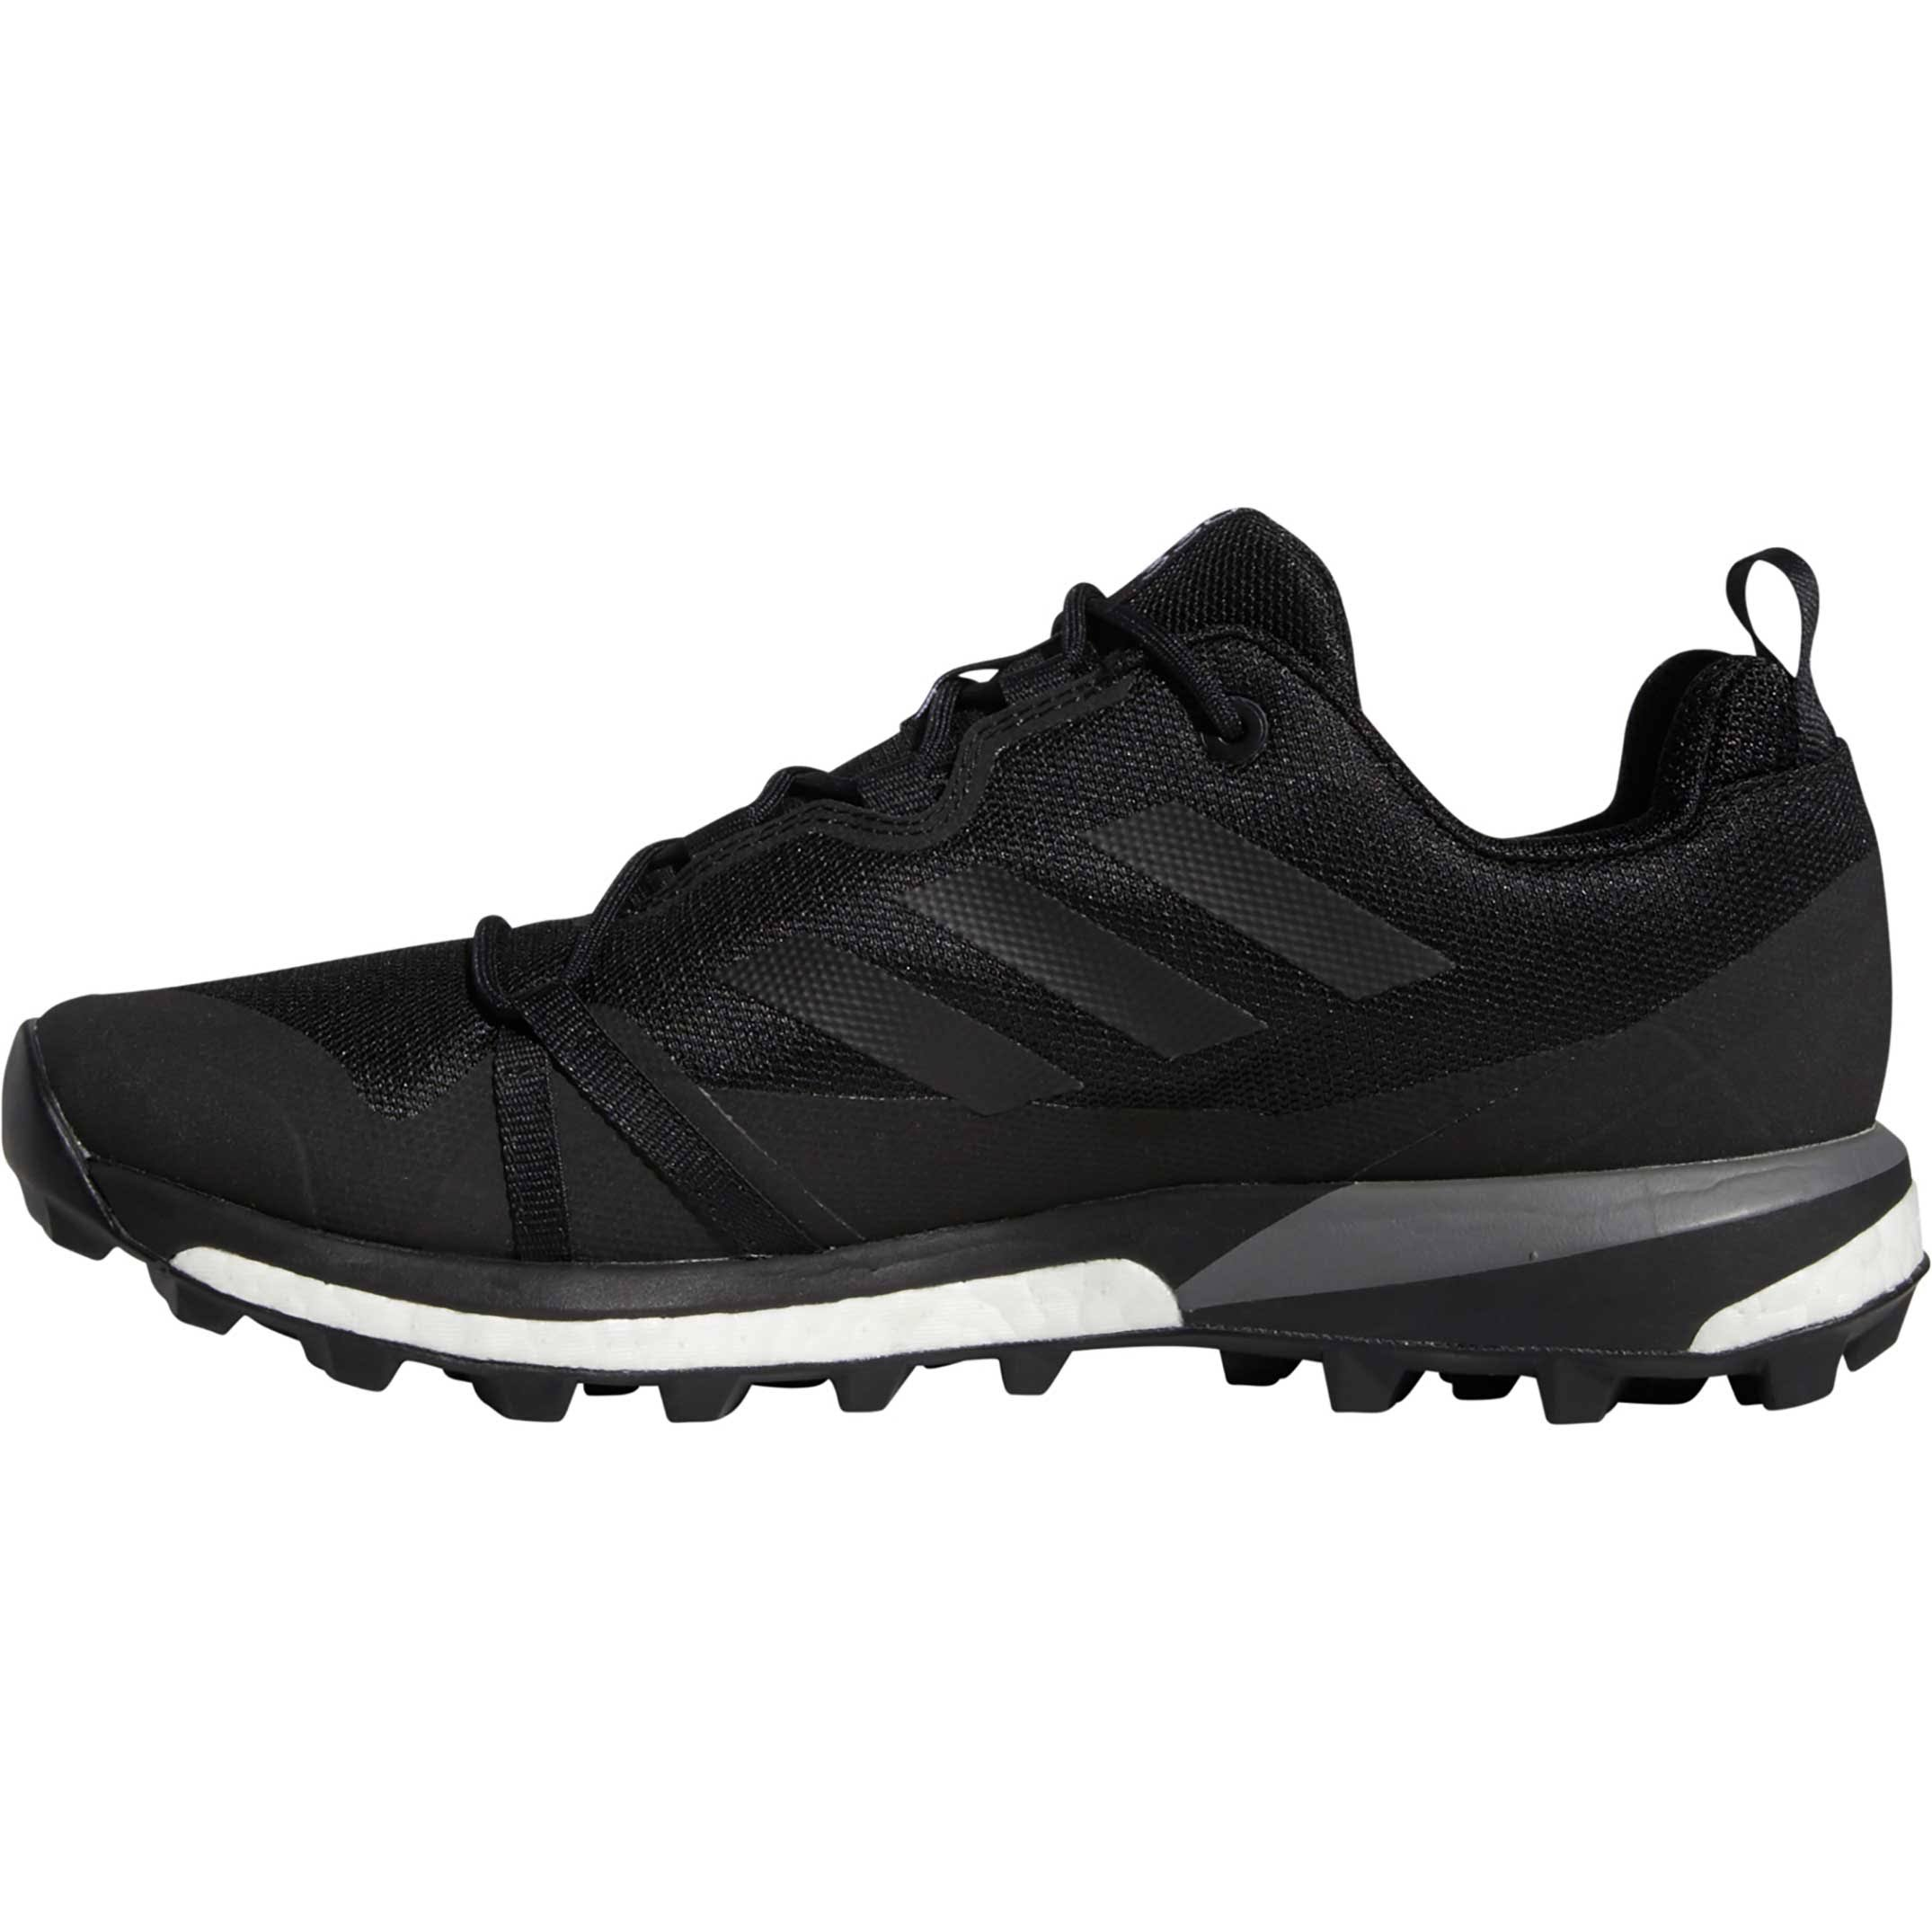 Adidas Terrex Skychaser LT Hiking Shoes Hiking - Black